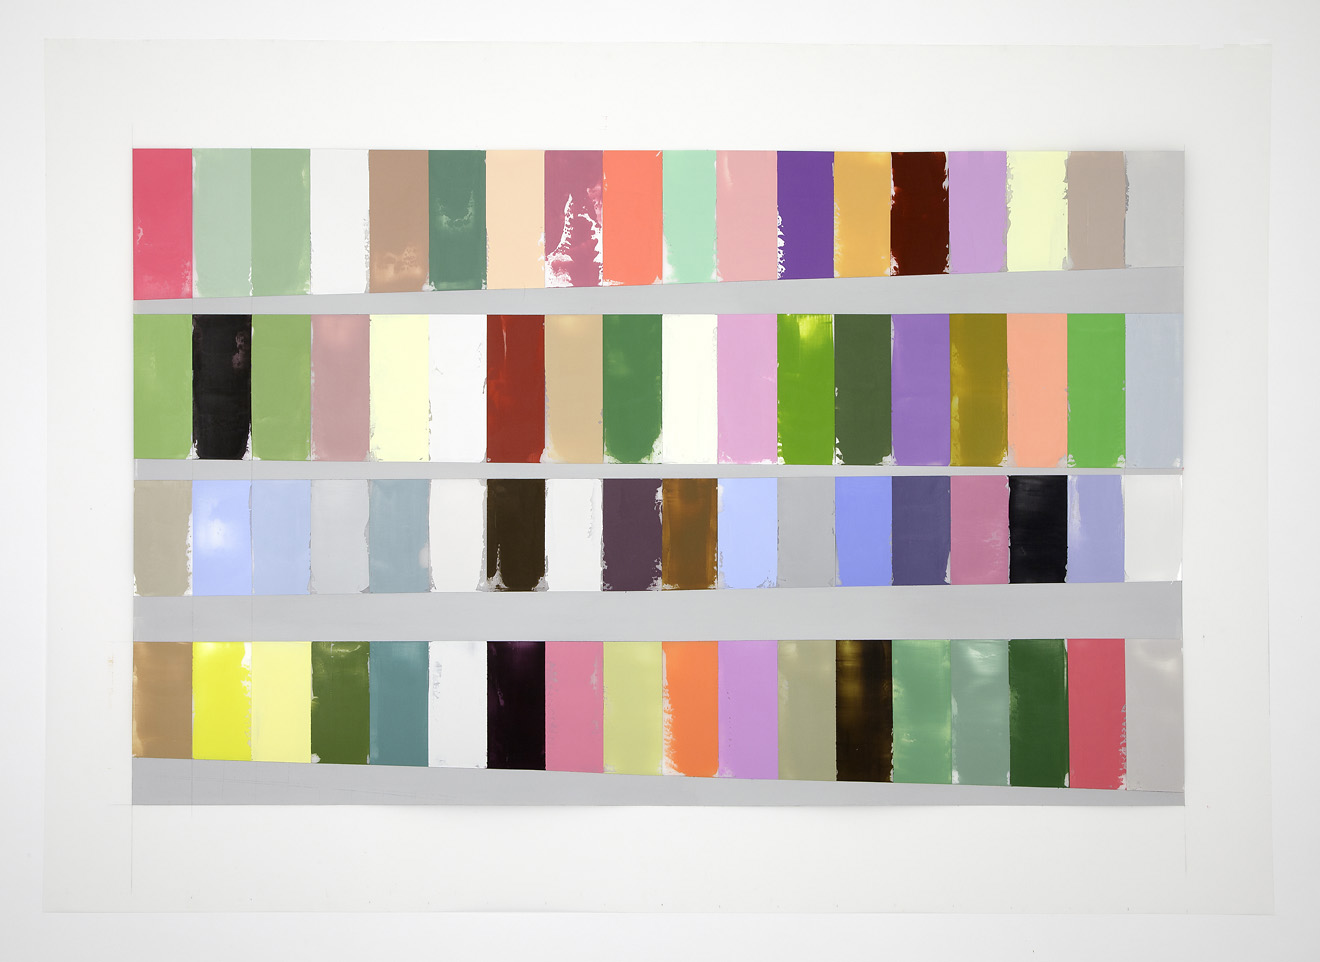 Debra Ramsay, A Year of Color, Adjusted for Daylength, 40 x 60 inches, acrylic o